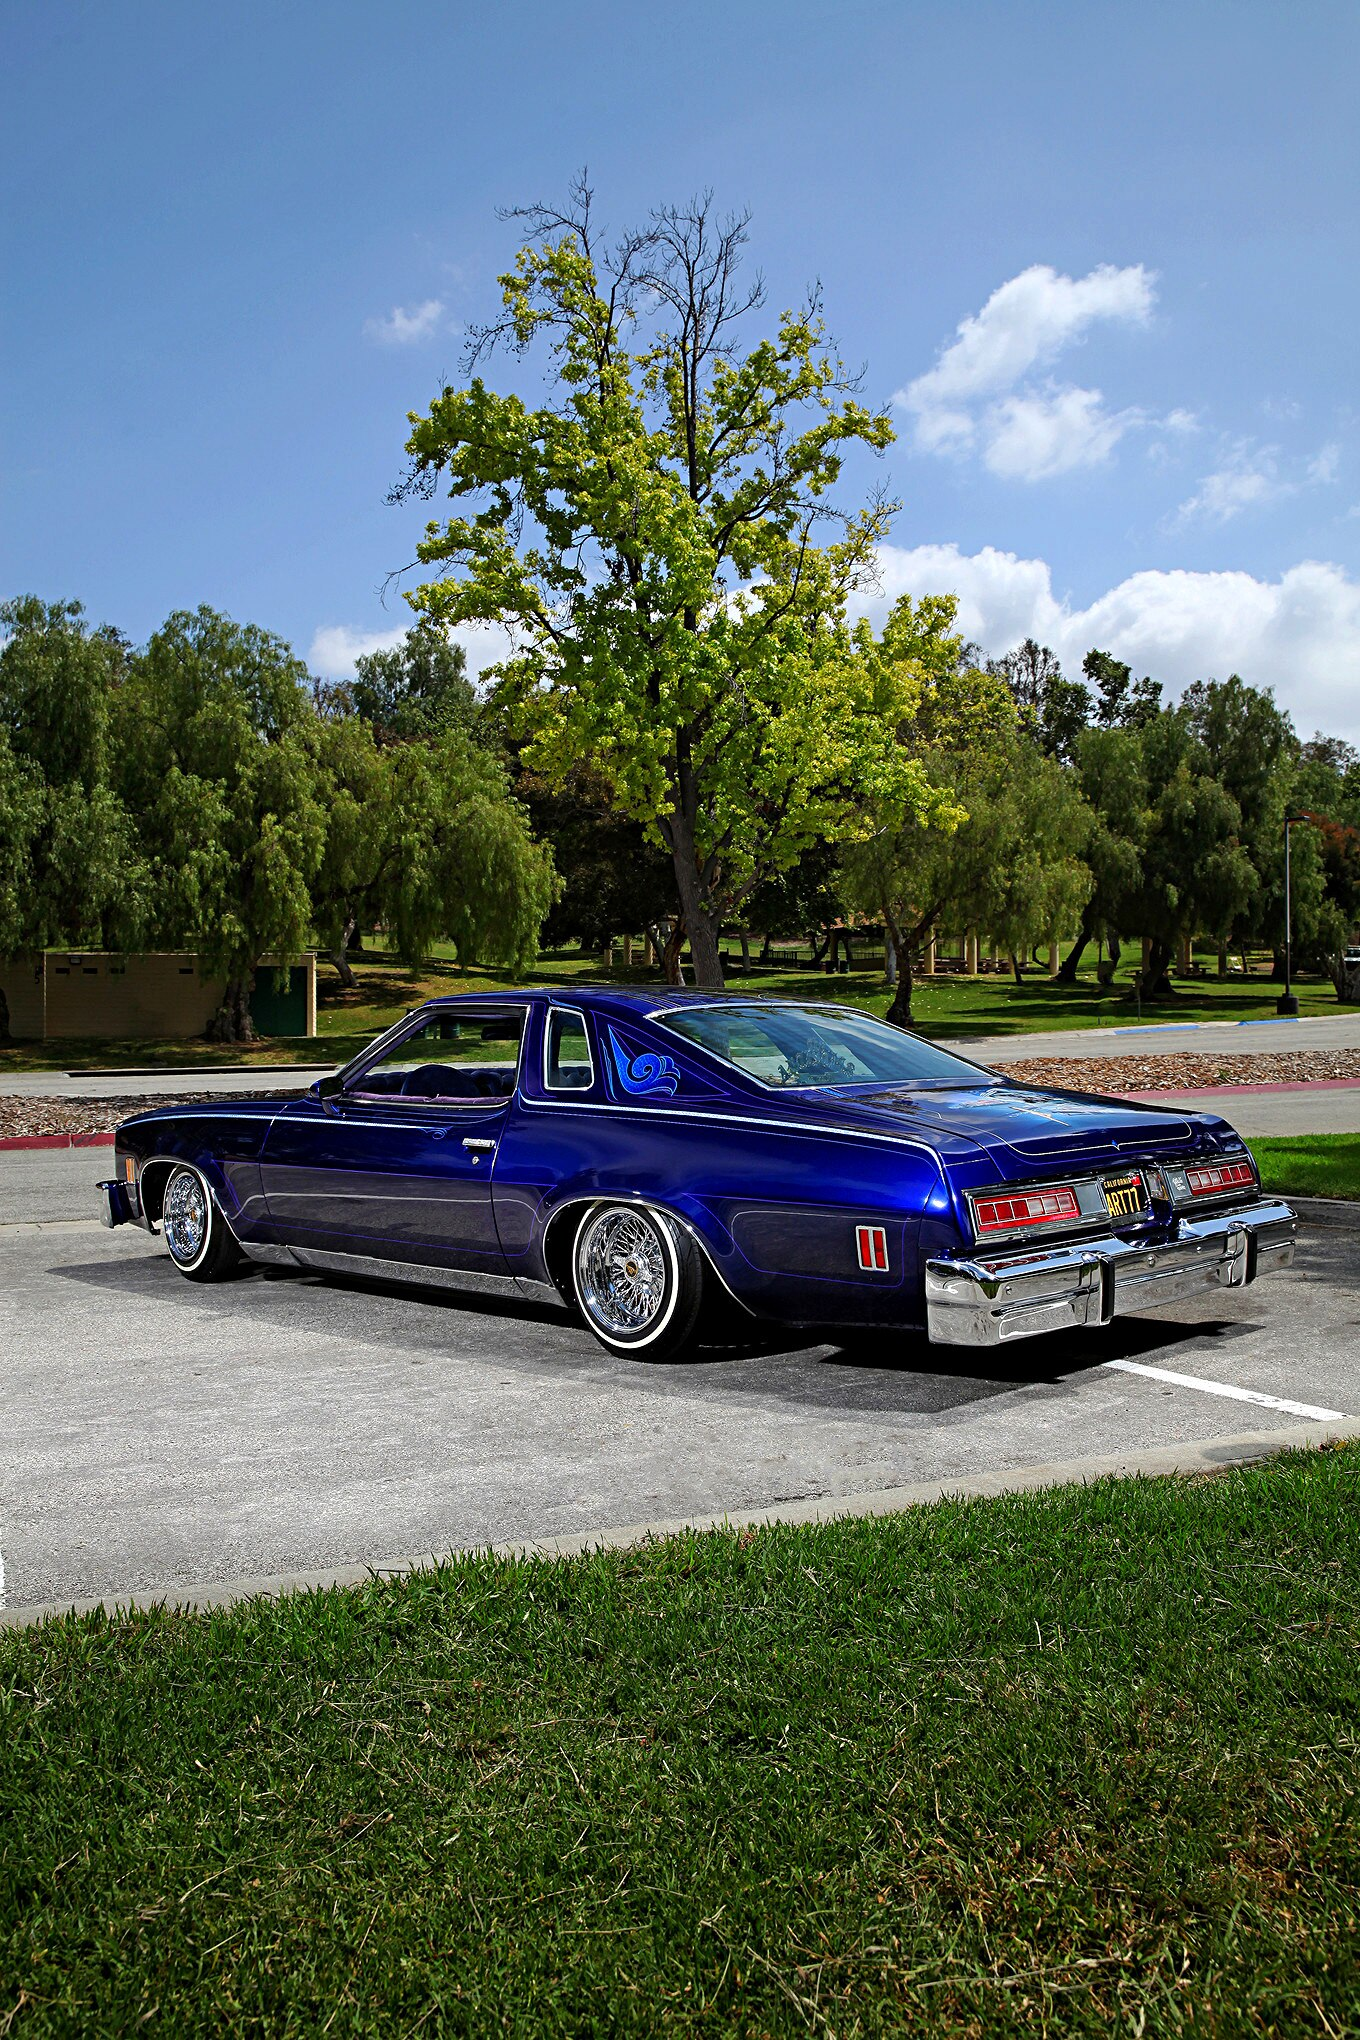 I 77 Chevy >> Longterm Relationship with a '77 Chevy Malibu Classic